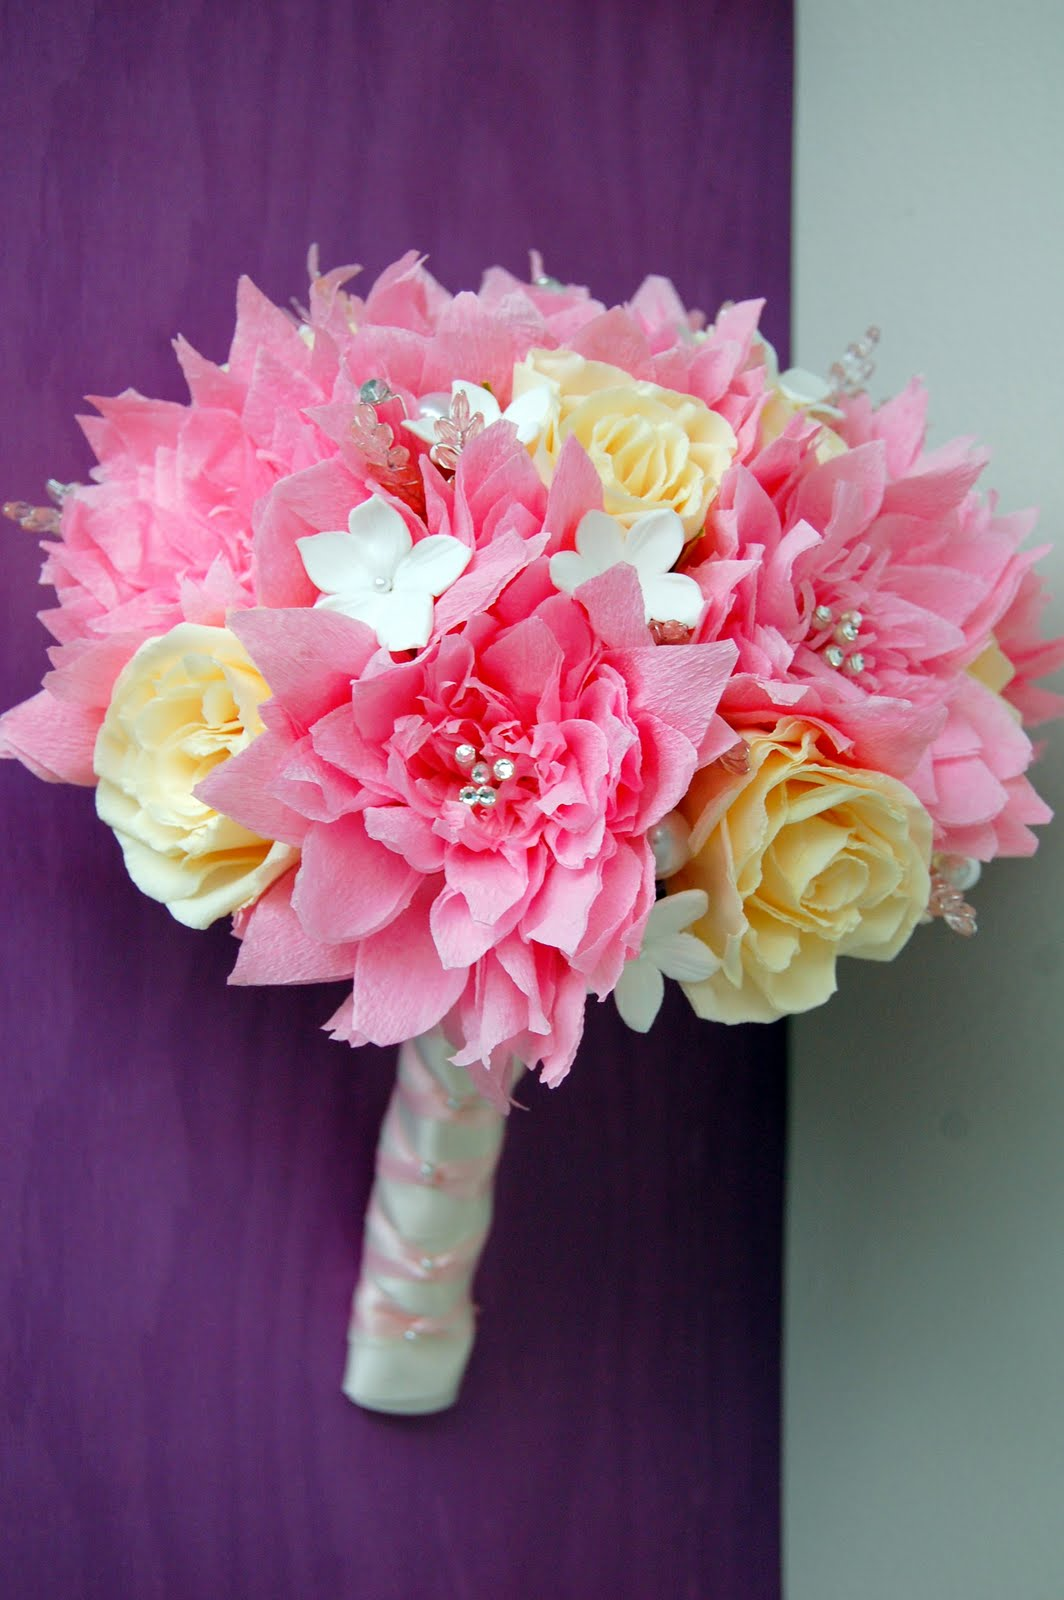 Pink Dahlia Paper Flower Wedding Bouquet Handmade PaPer FloweRs By Maria Noble